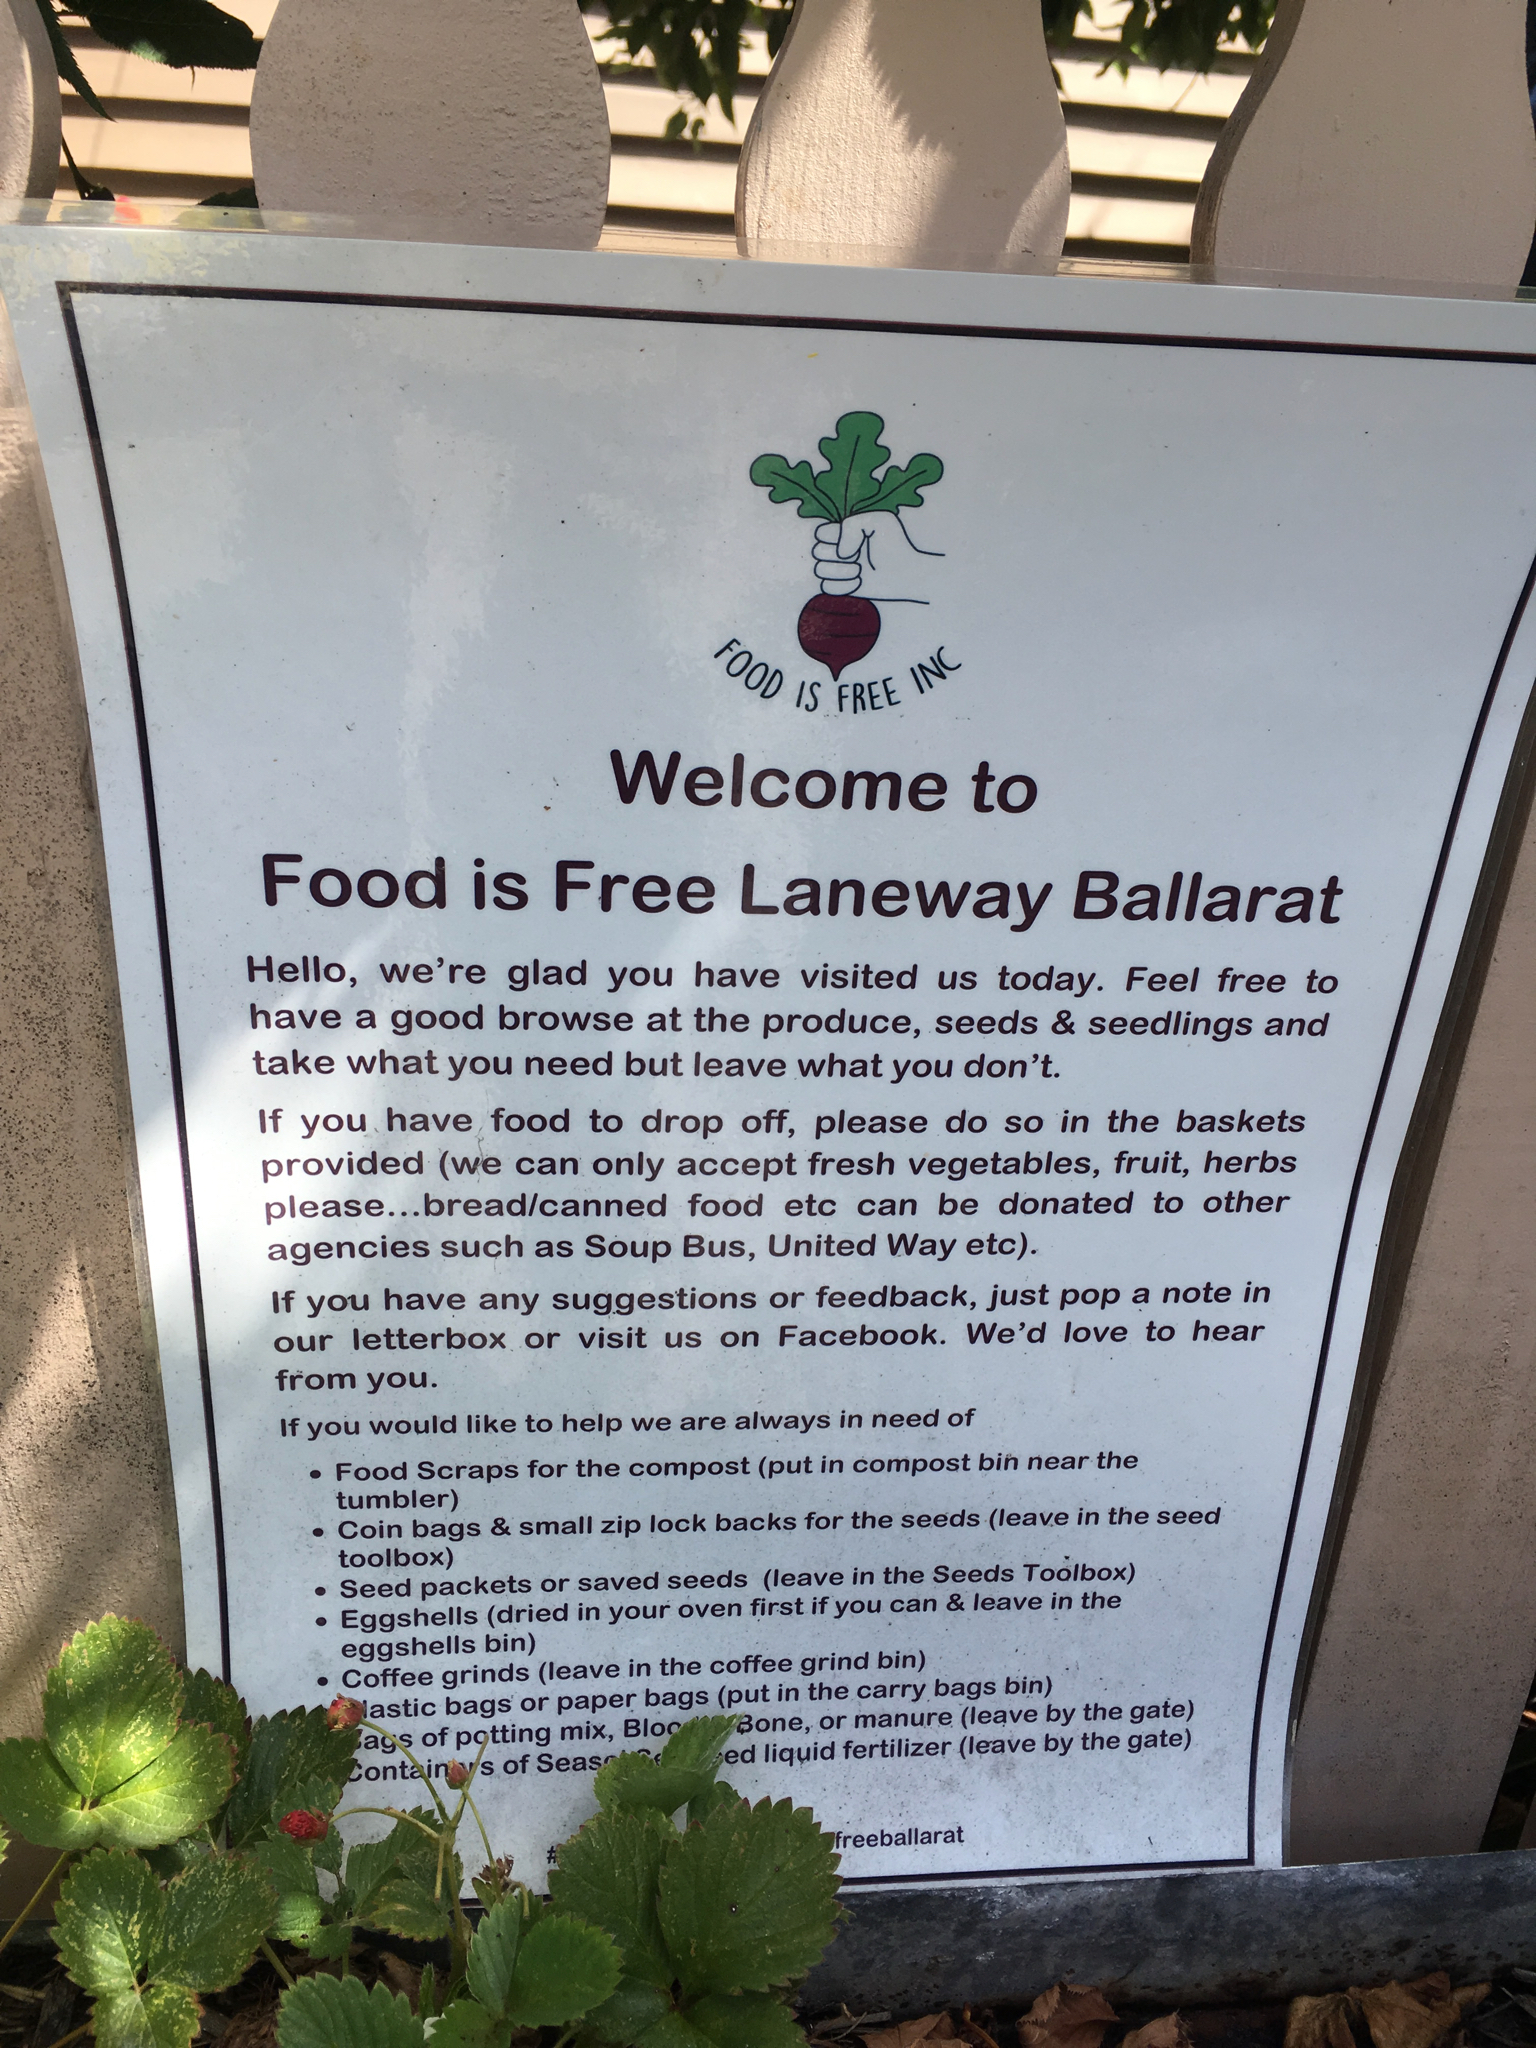 Ballarat, Australia: the Food Is Free Laneway (or at least